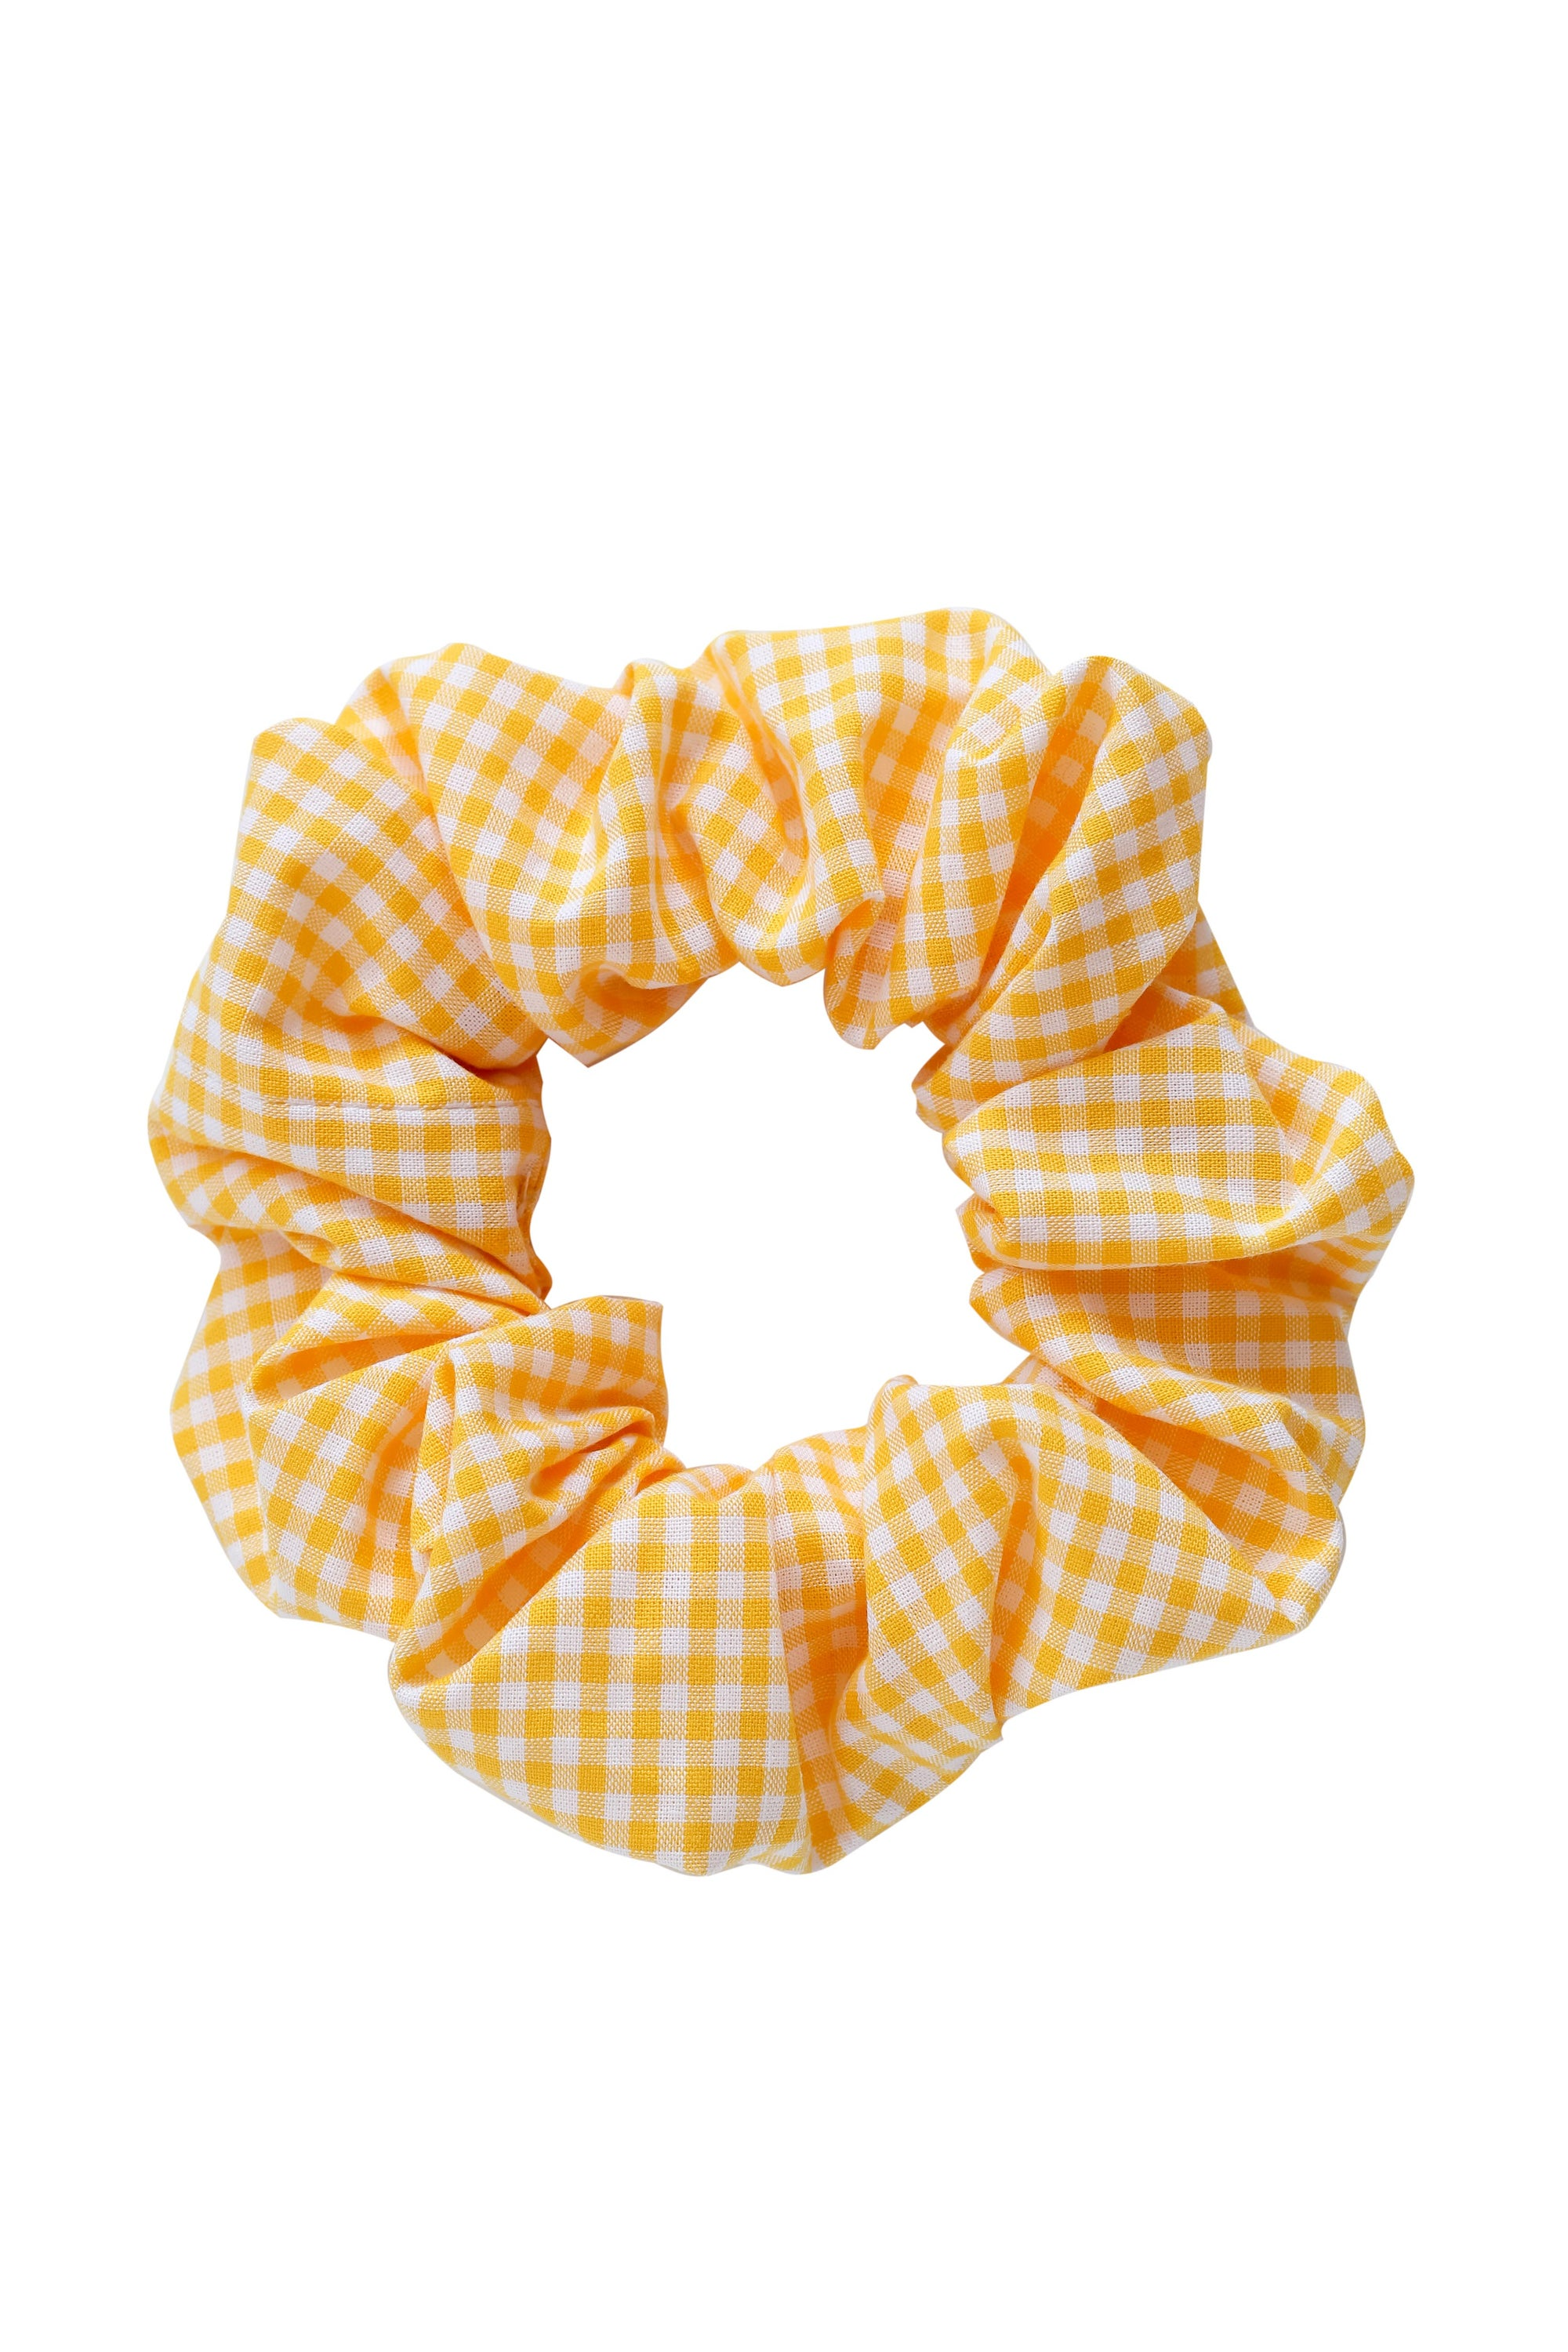 Image of Scrunchie * Vichy check * Sunny yellow